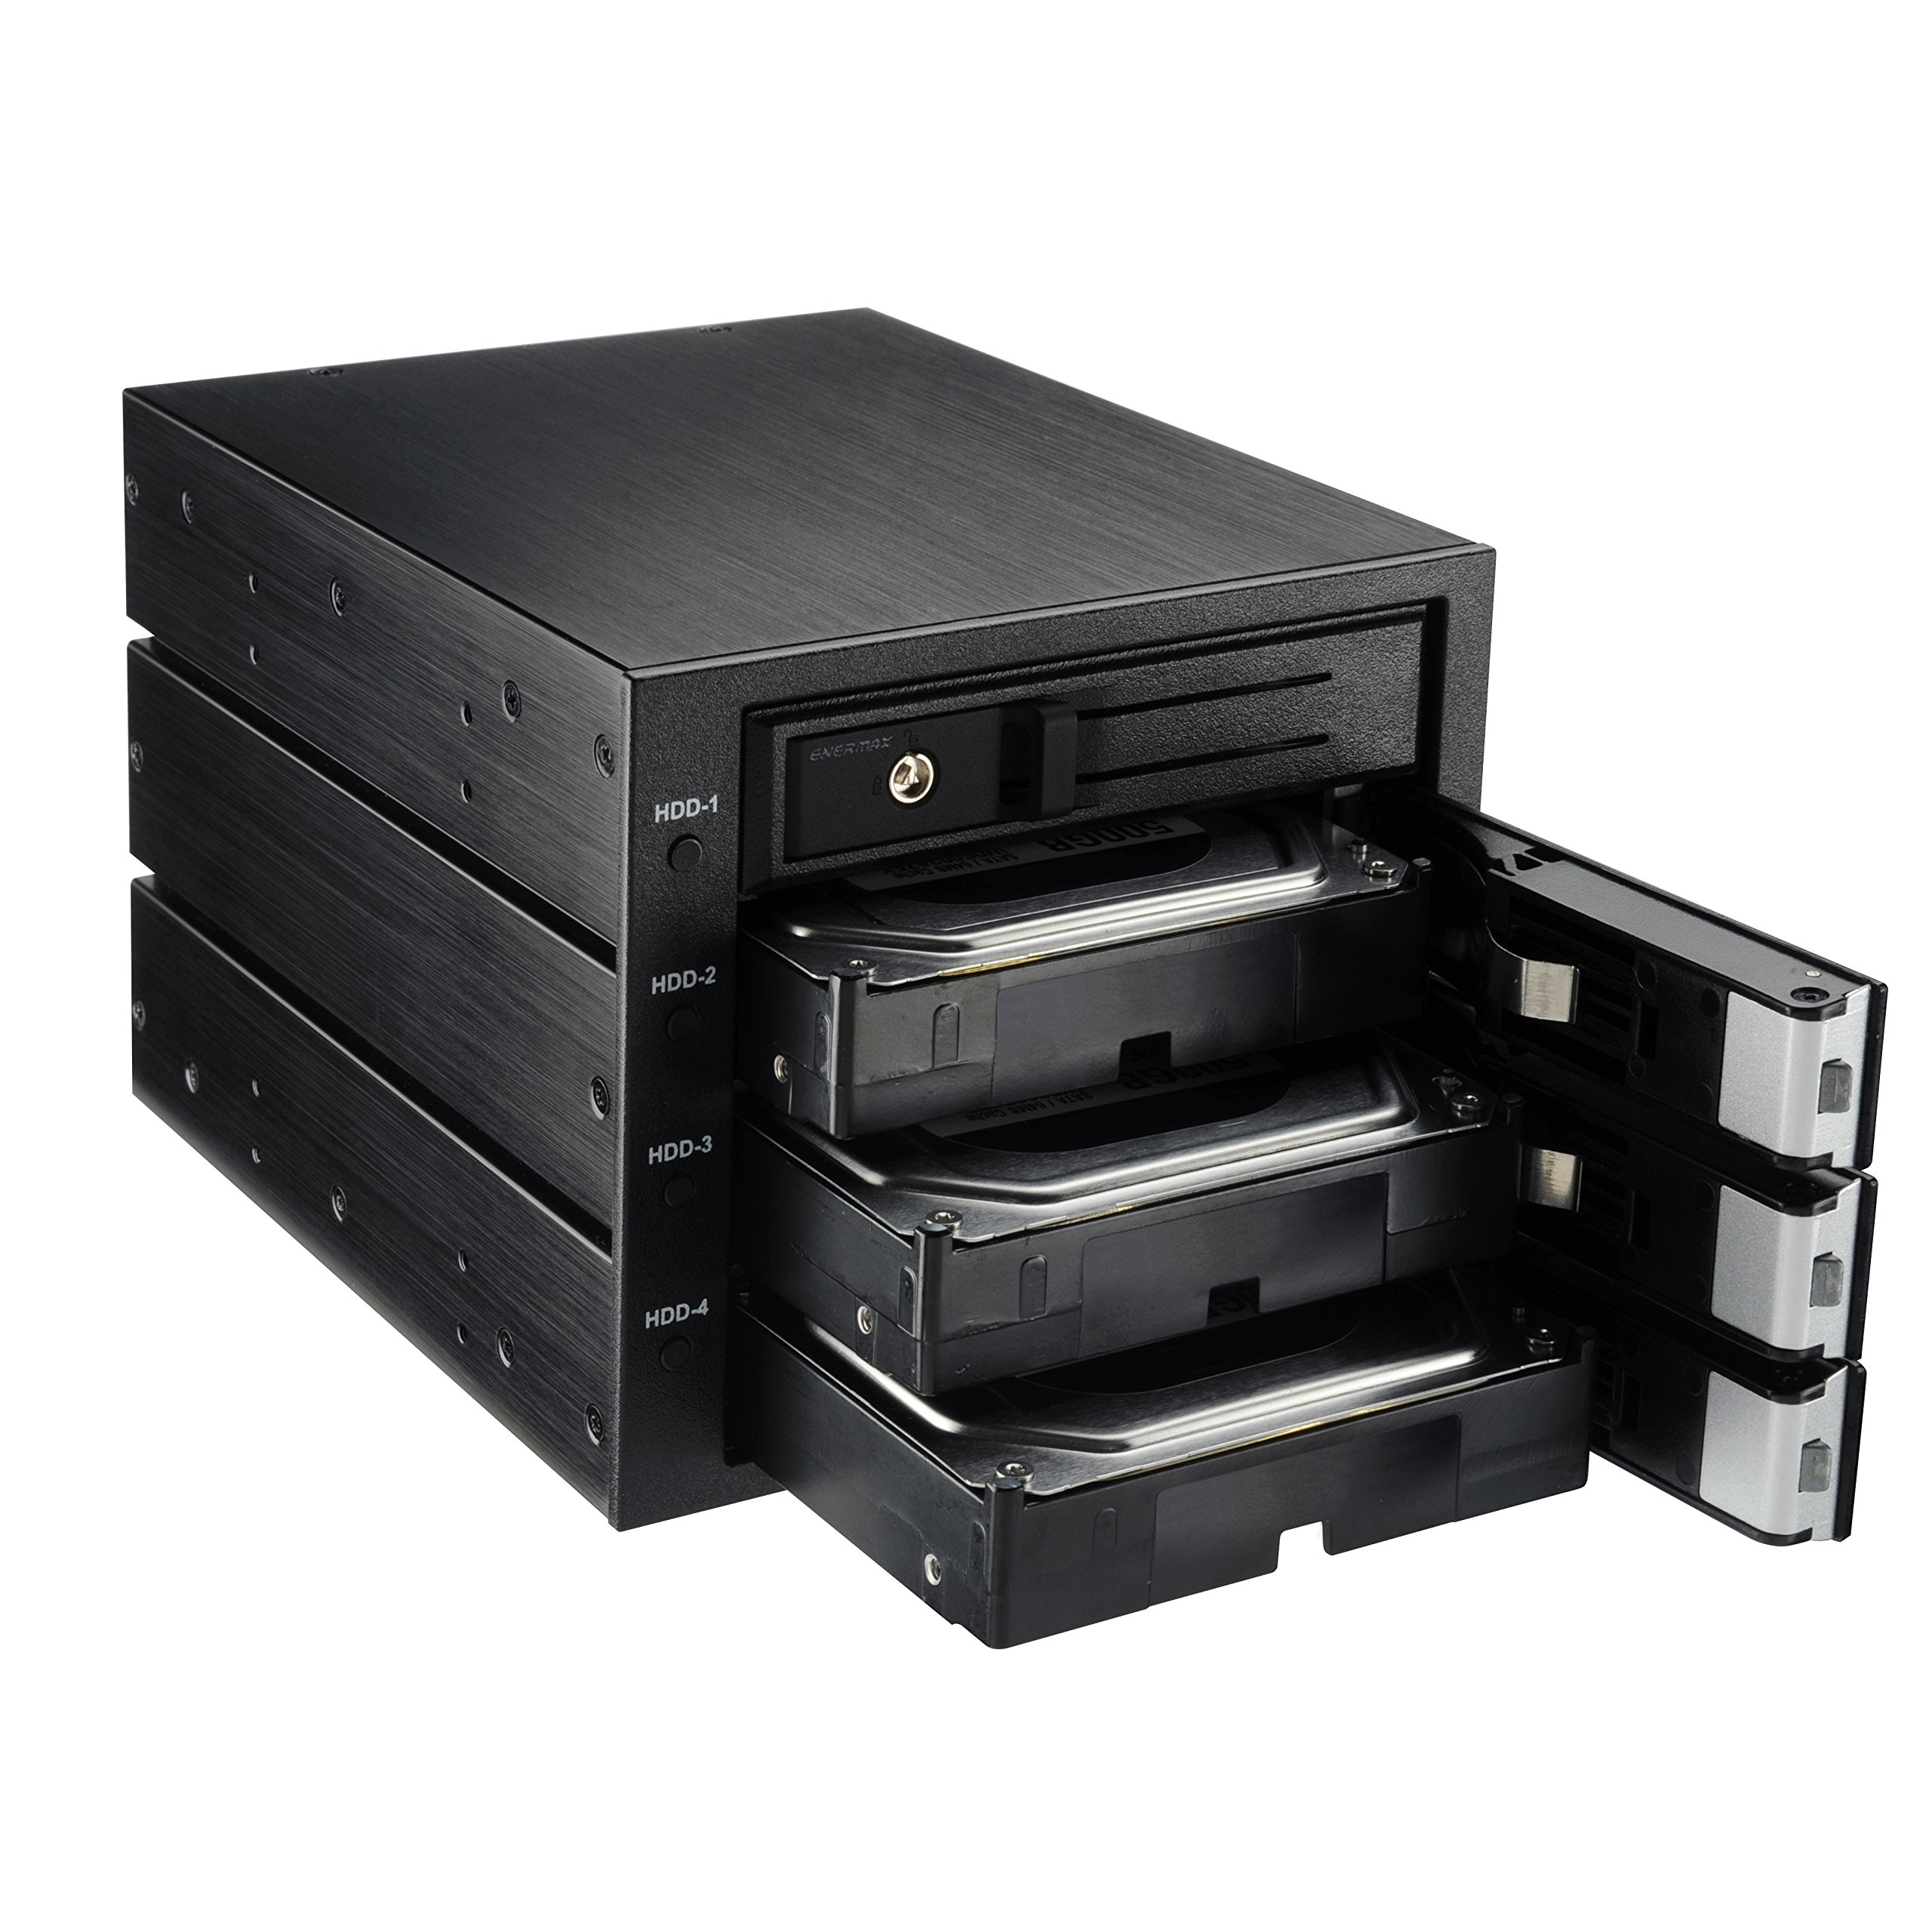 "Enermax Emk5501 Drive Enclosure - Black - 5 X Total Bay - 5 X 3.5"" Bay - Serial Ata/600, Sas - Aluminum - Cooling Fan - 5.25"" (emk5501)"